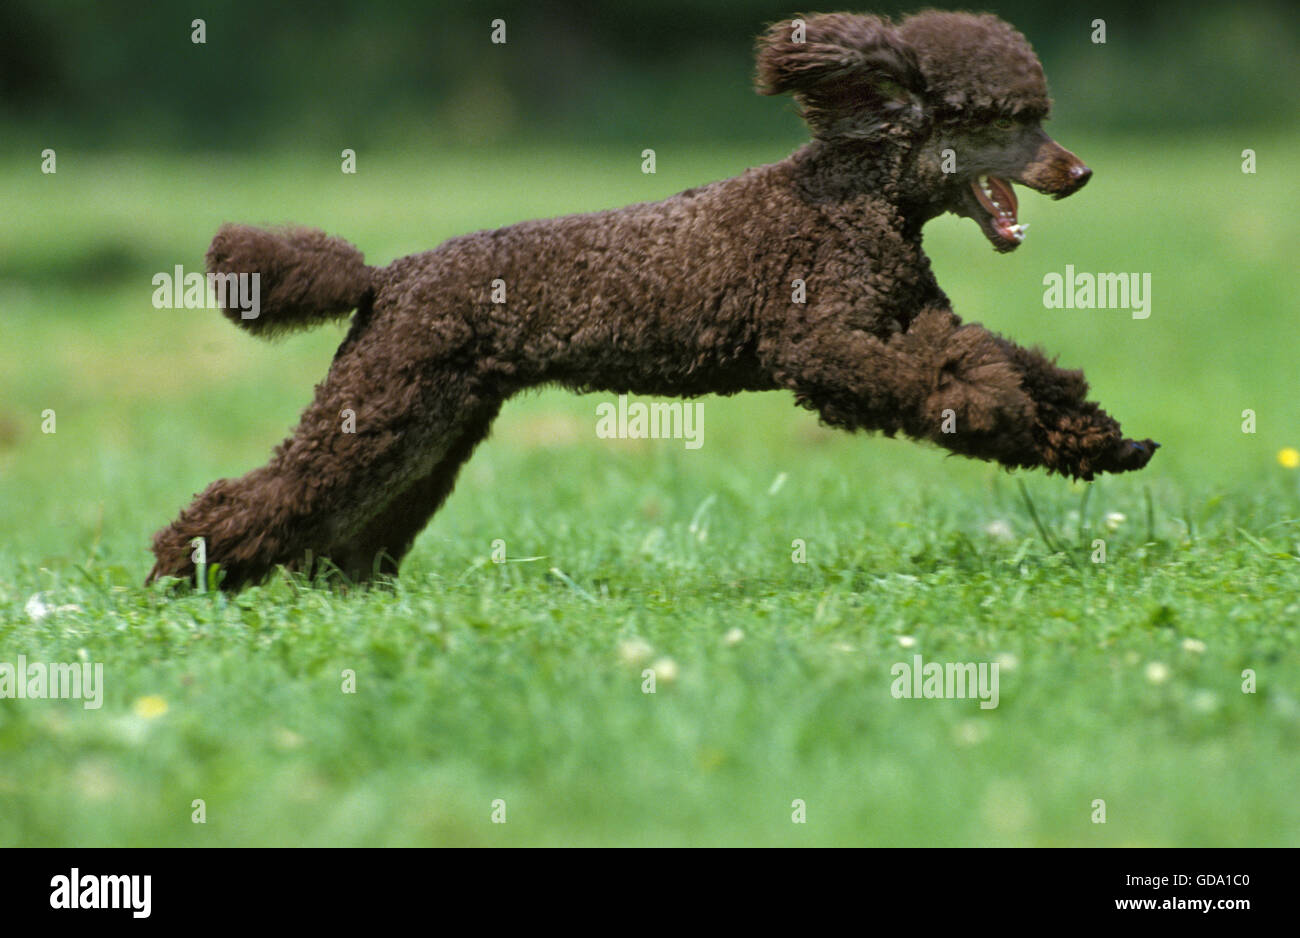 Black Miniature Poodle, Adult running on Grass - Stock Image